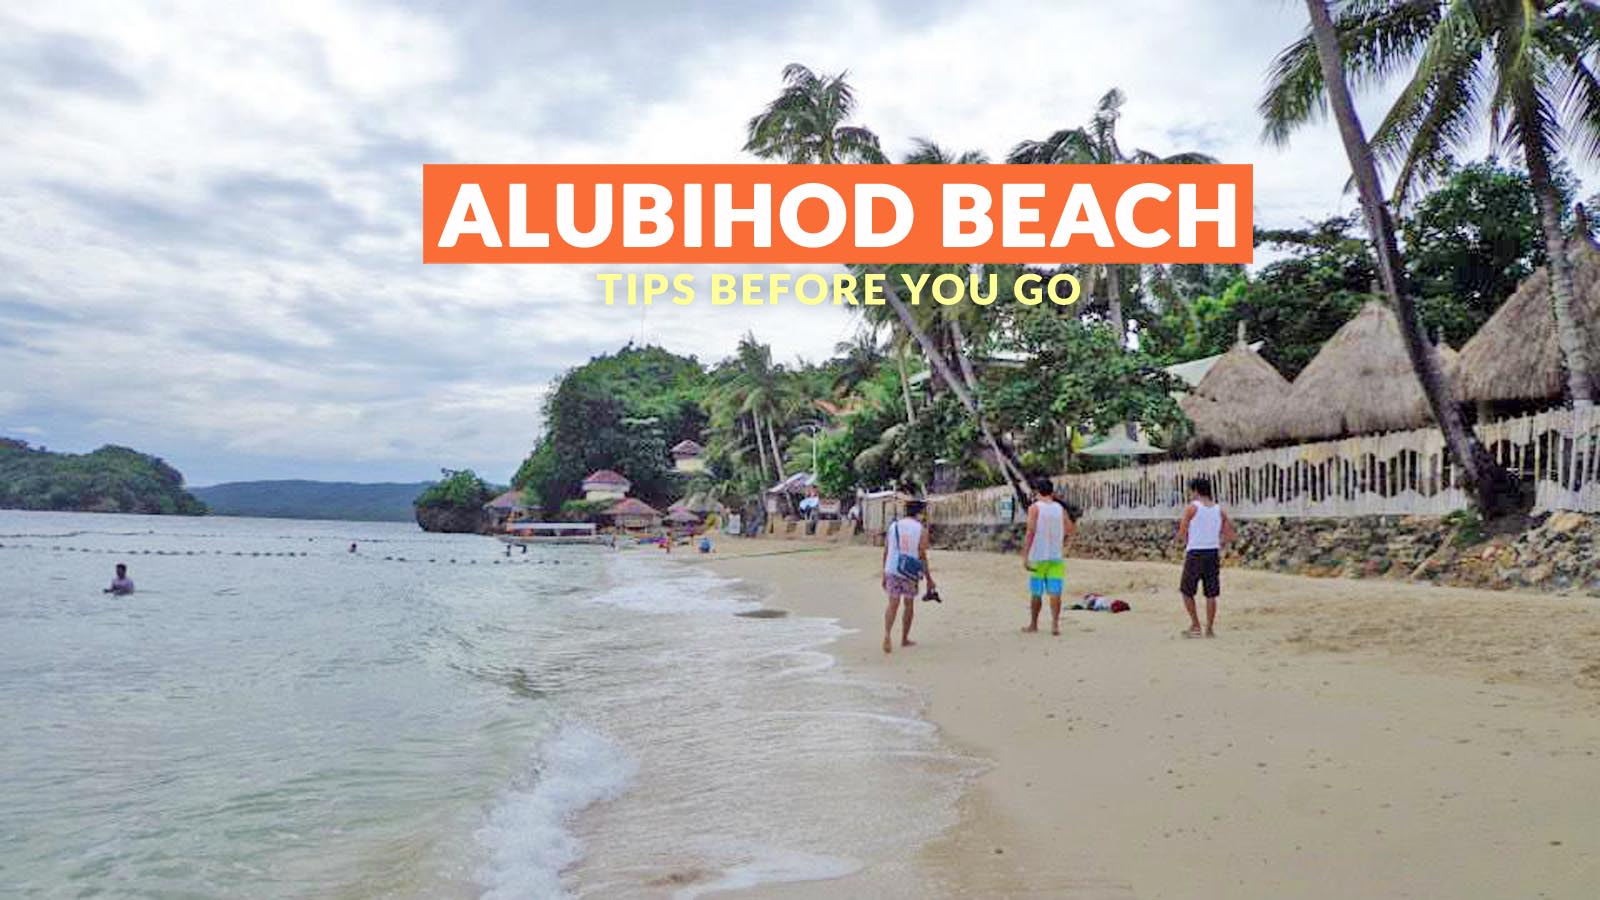 Alubihod Beach Guimaras Important Tips Philippine Beach Guide